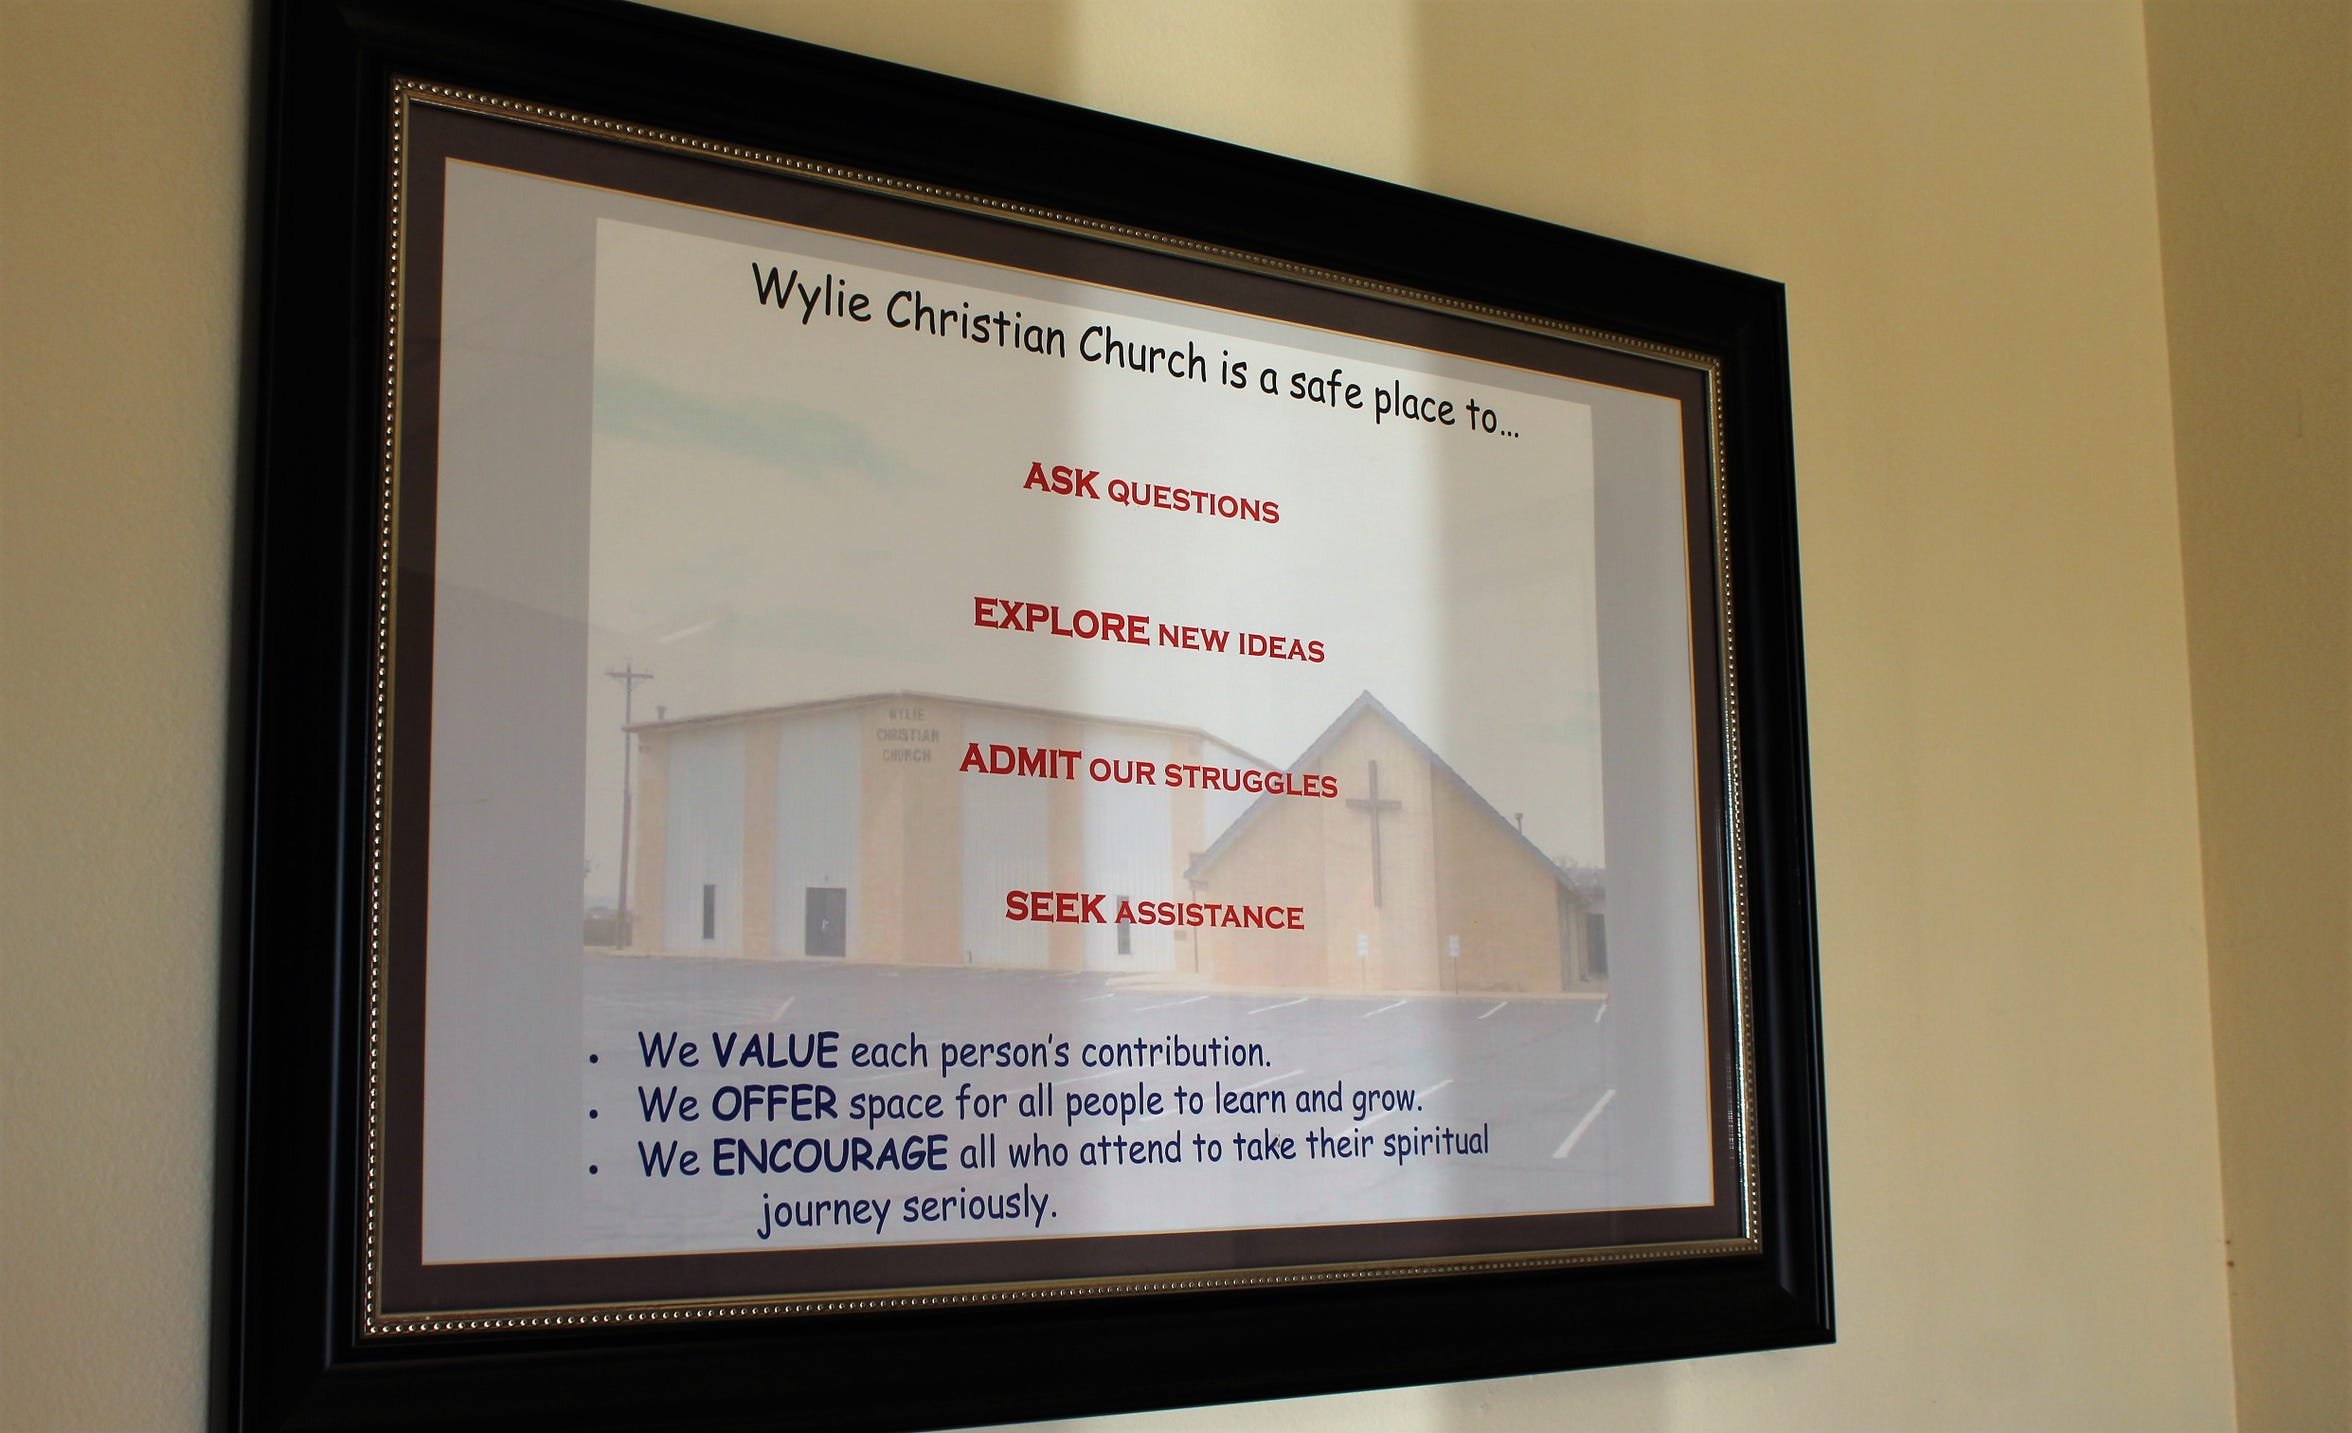 The morning sun illuminates a framed declaration by Wylie Christian Church that it is a safe place.